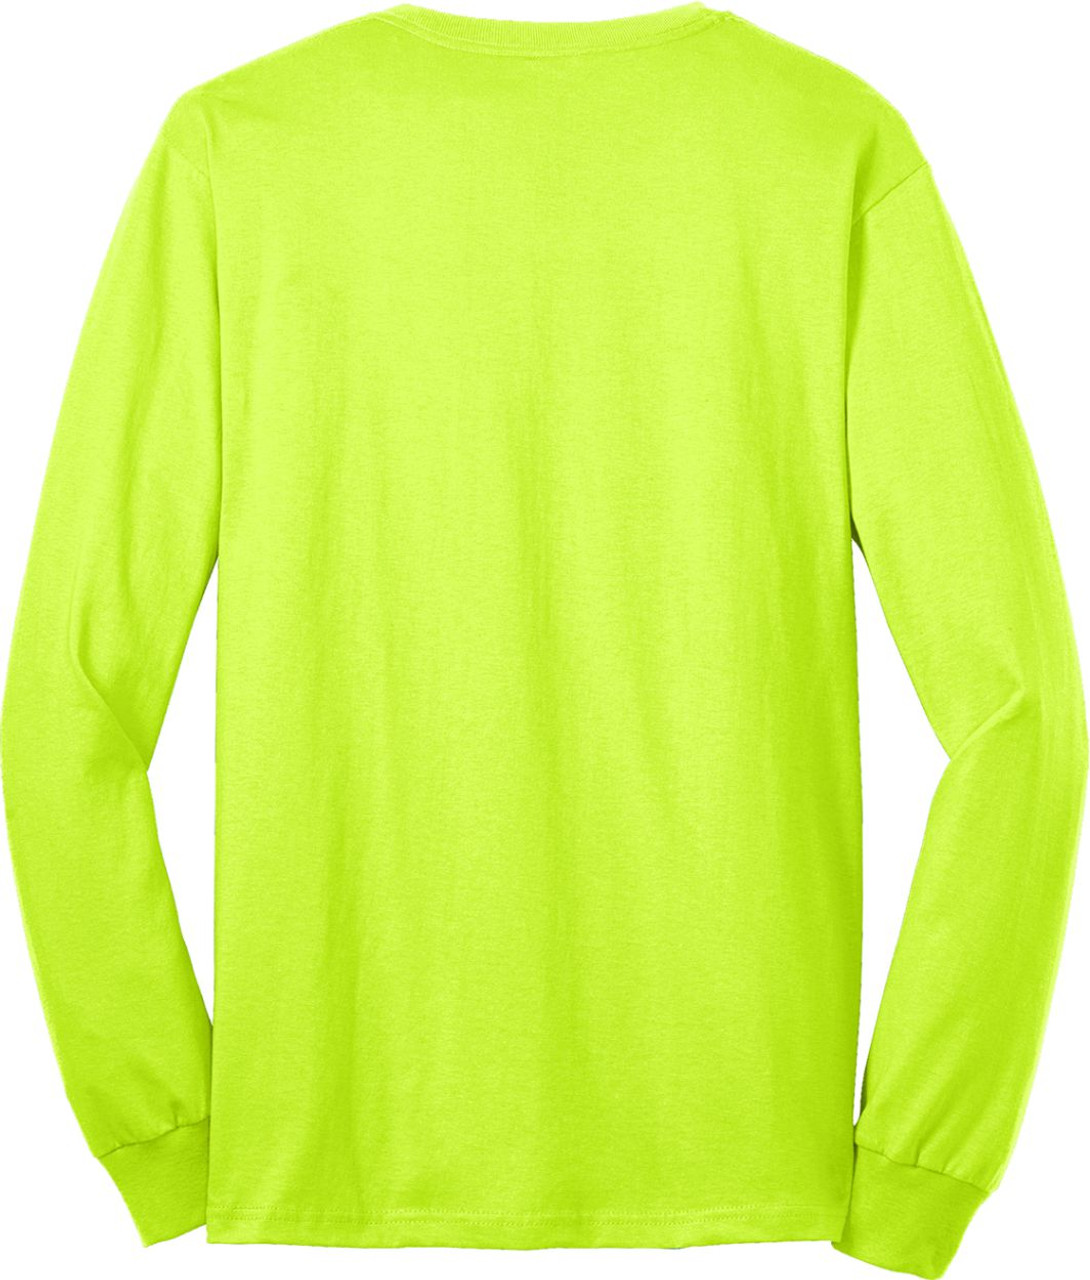 Best Construction Safety Long Sleeve Shirts | Safety Green T-Shirt